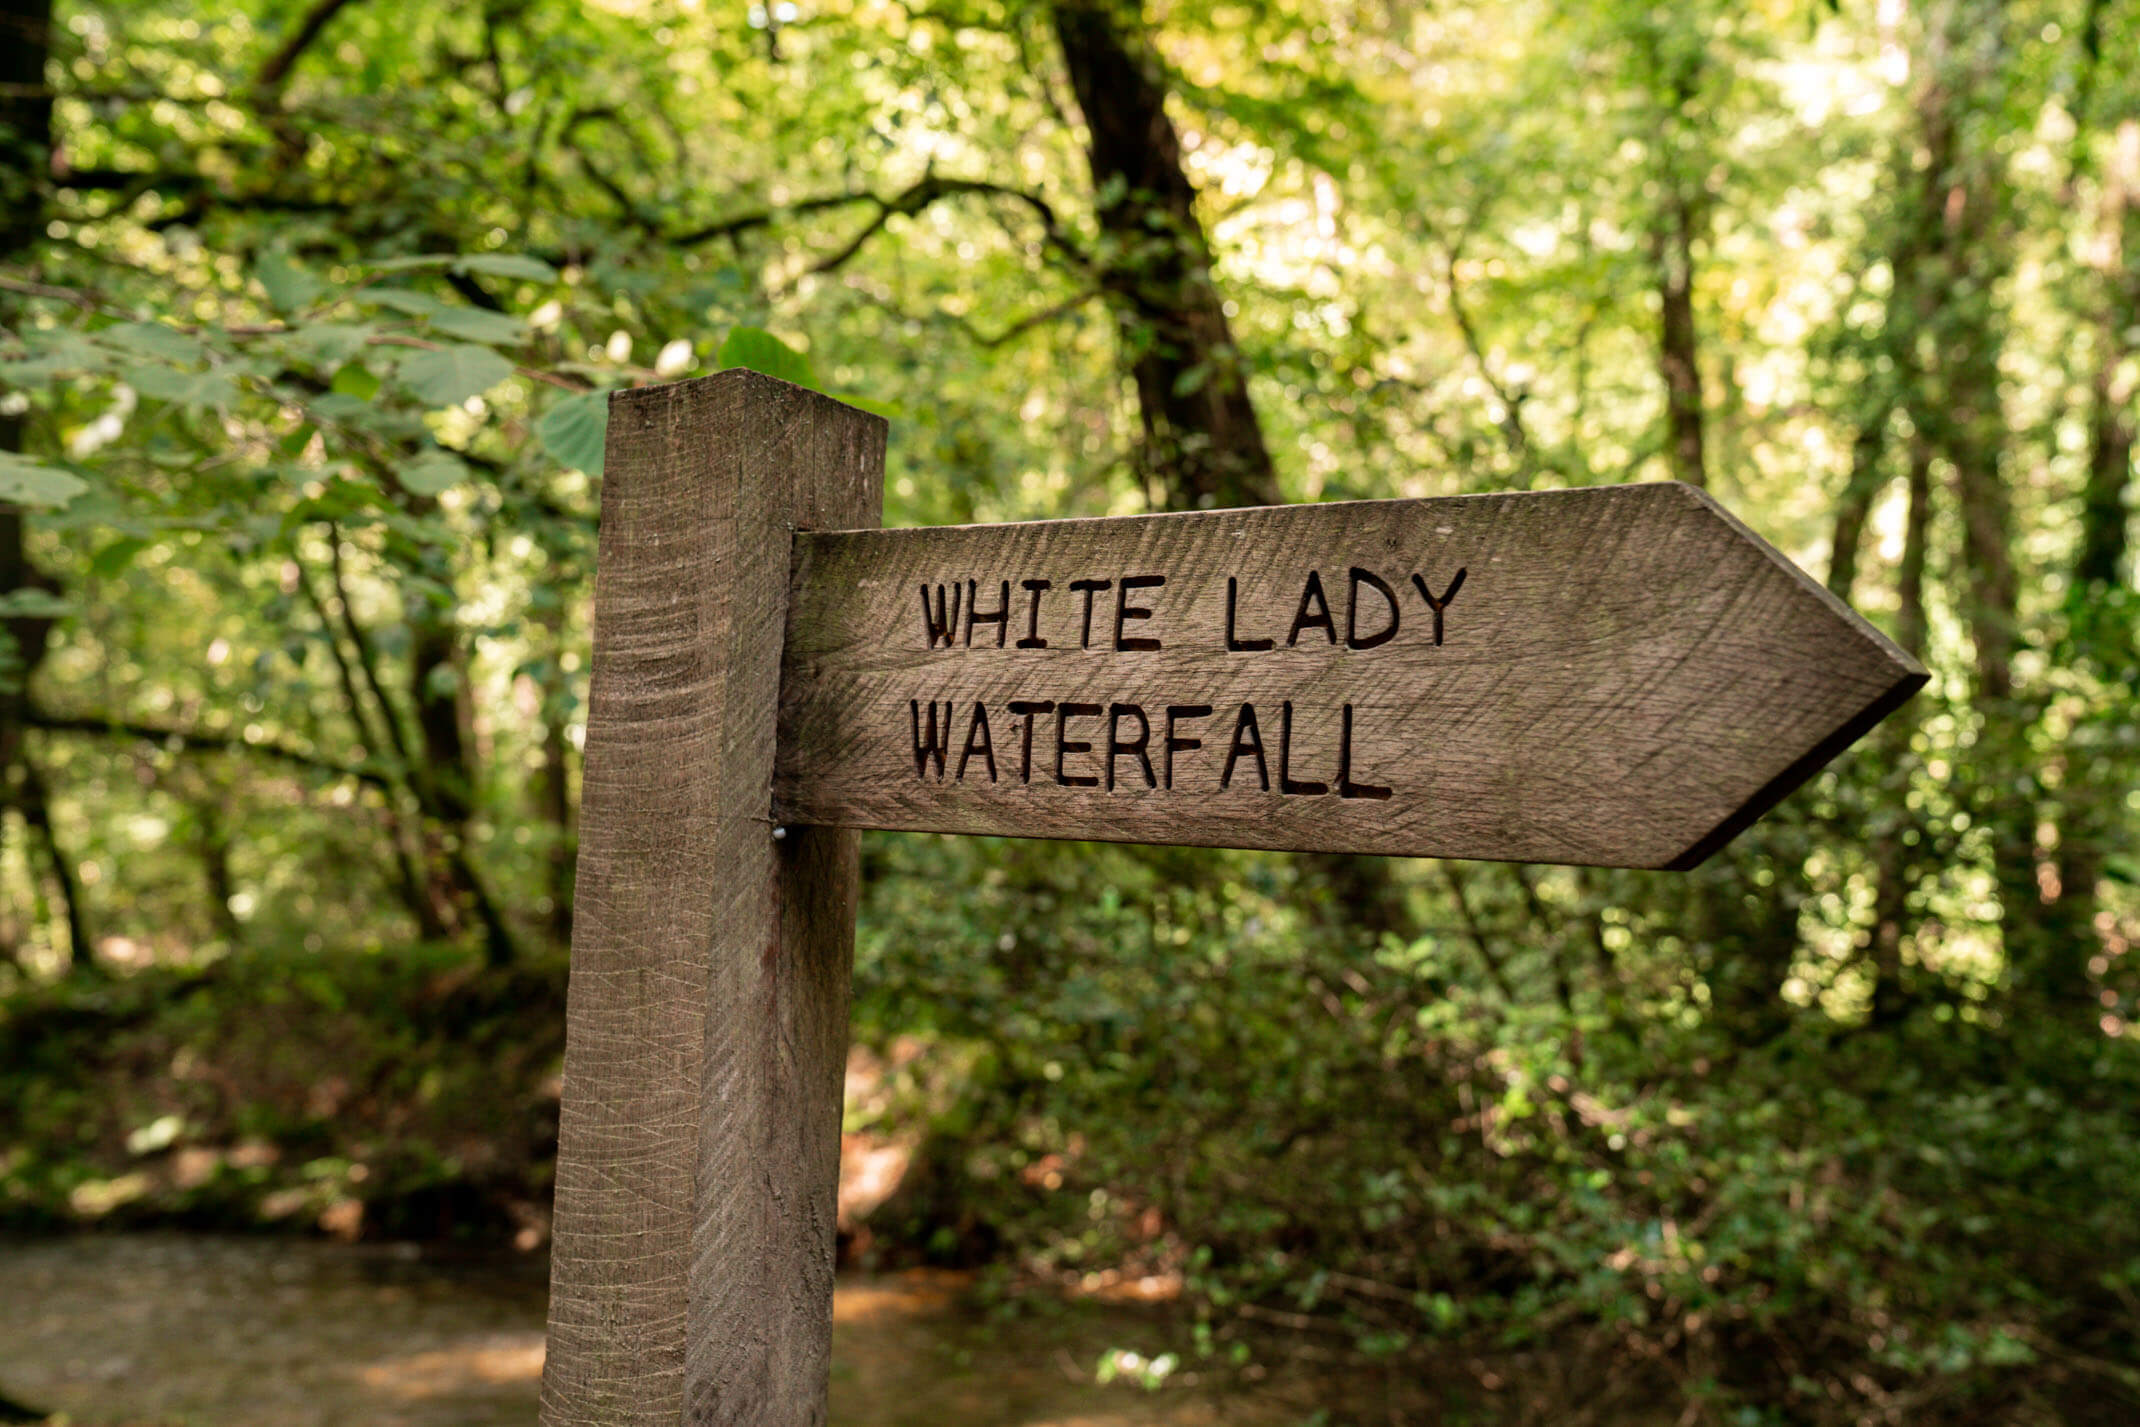 White Lady Waterfall: A guide to exploring Dartmoor National Park, Devon